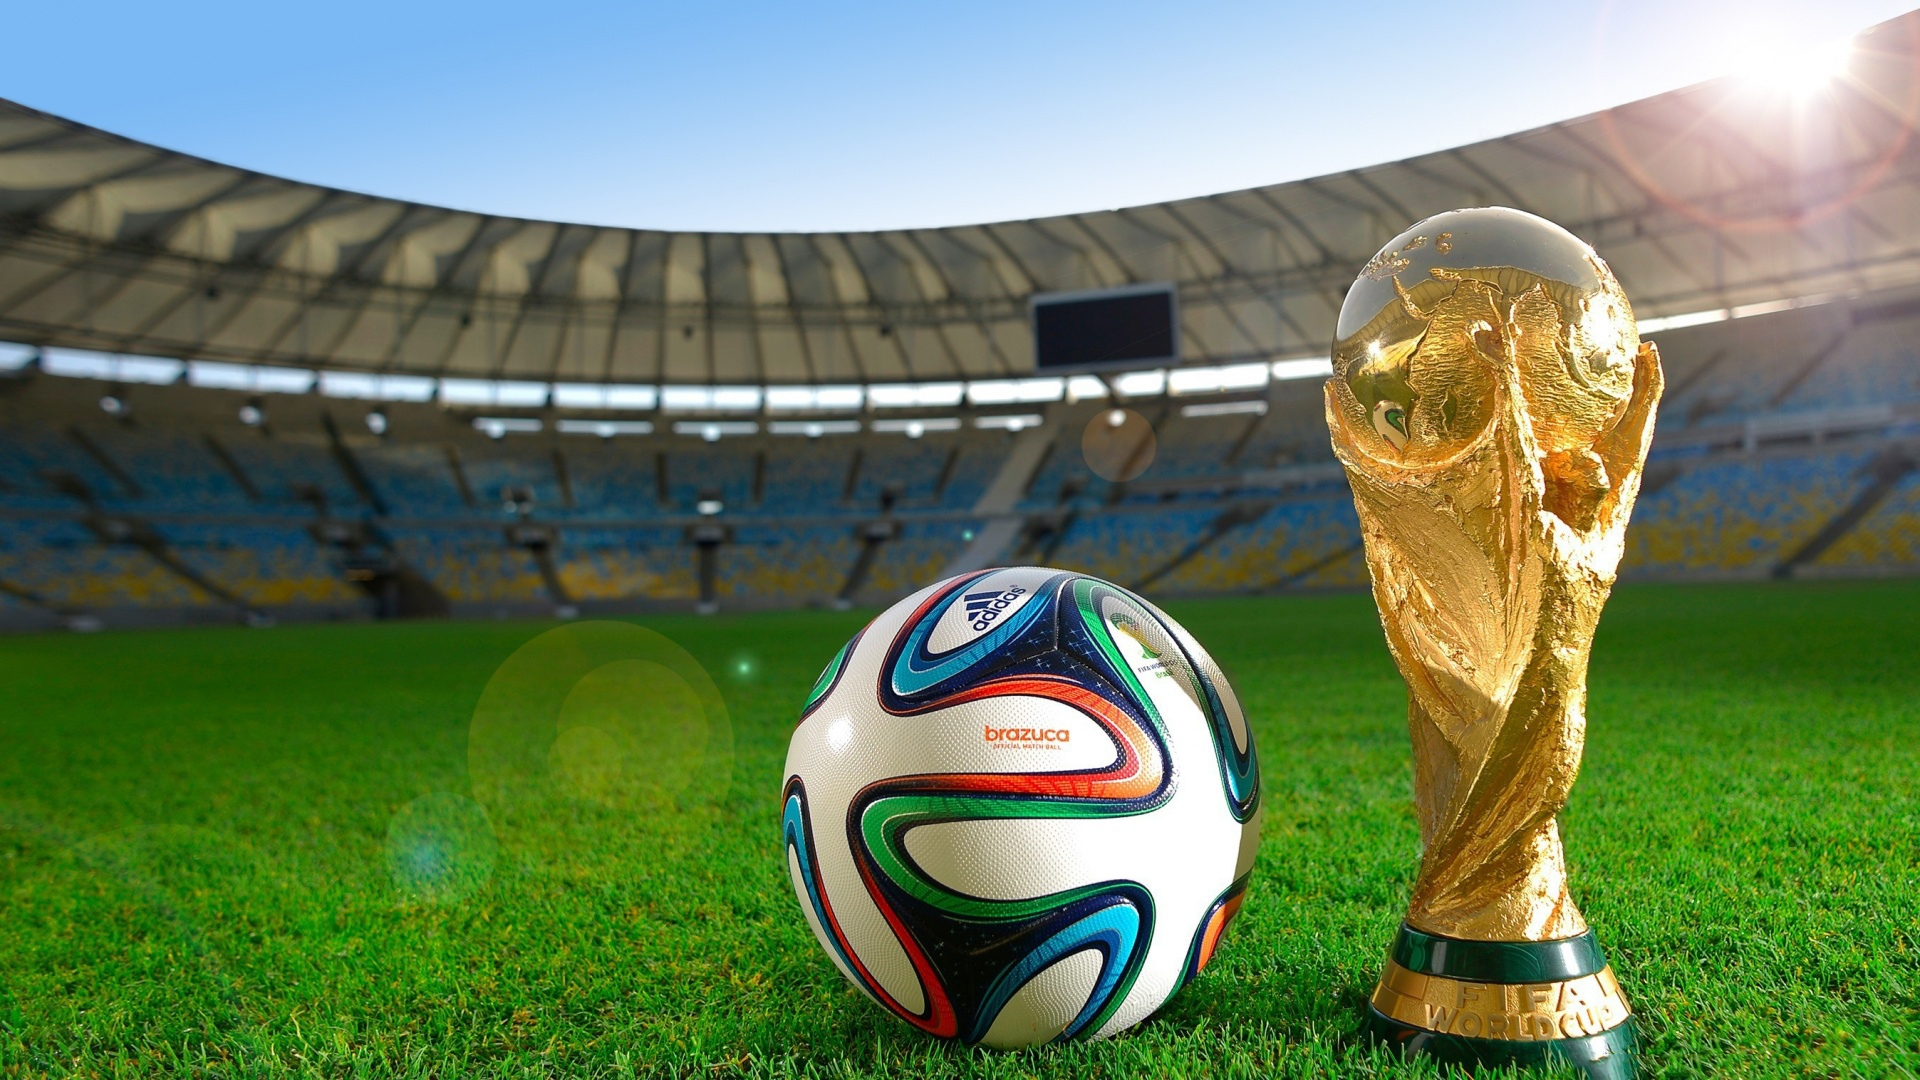 the key issues surrounding big data management in soccer world cup 2014 and its effects on fifa By comparing the short-term and long-term economic impacts of the world cup upon countries that host the spectacular event, this article will qualitatively demonstrate that the world cup has positive impacts in the long run.